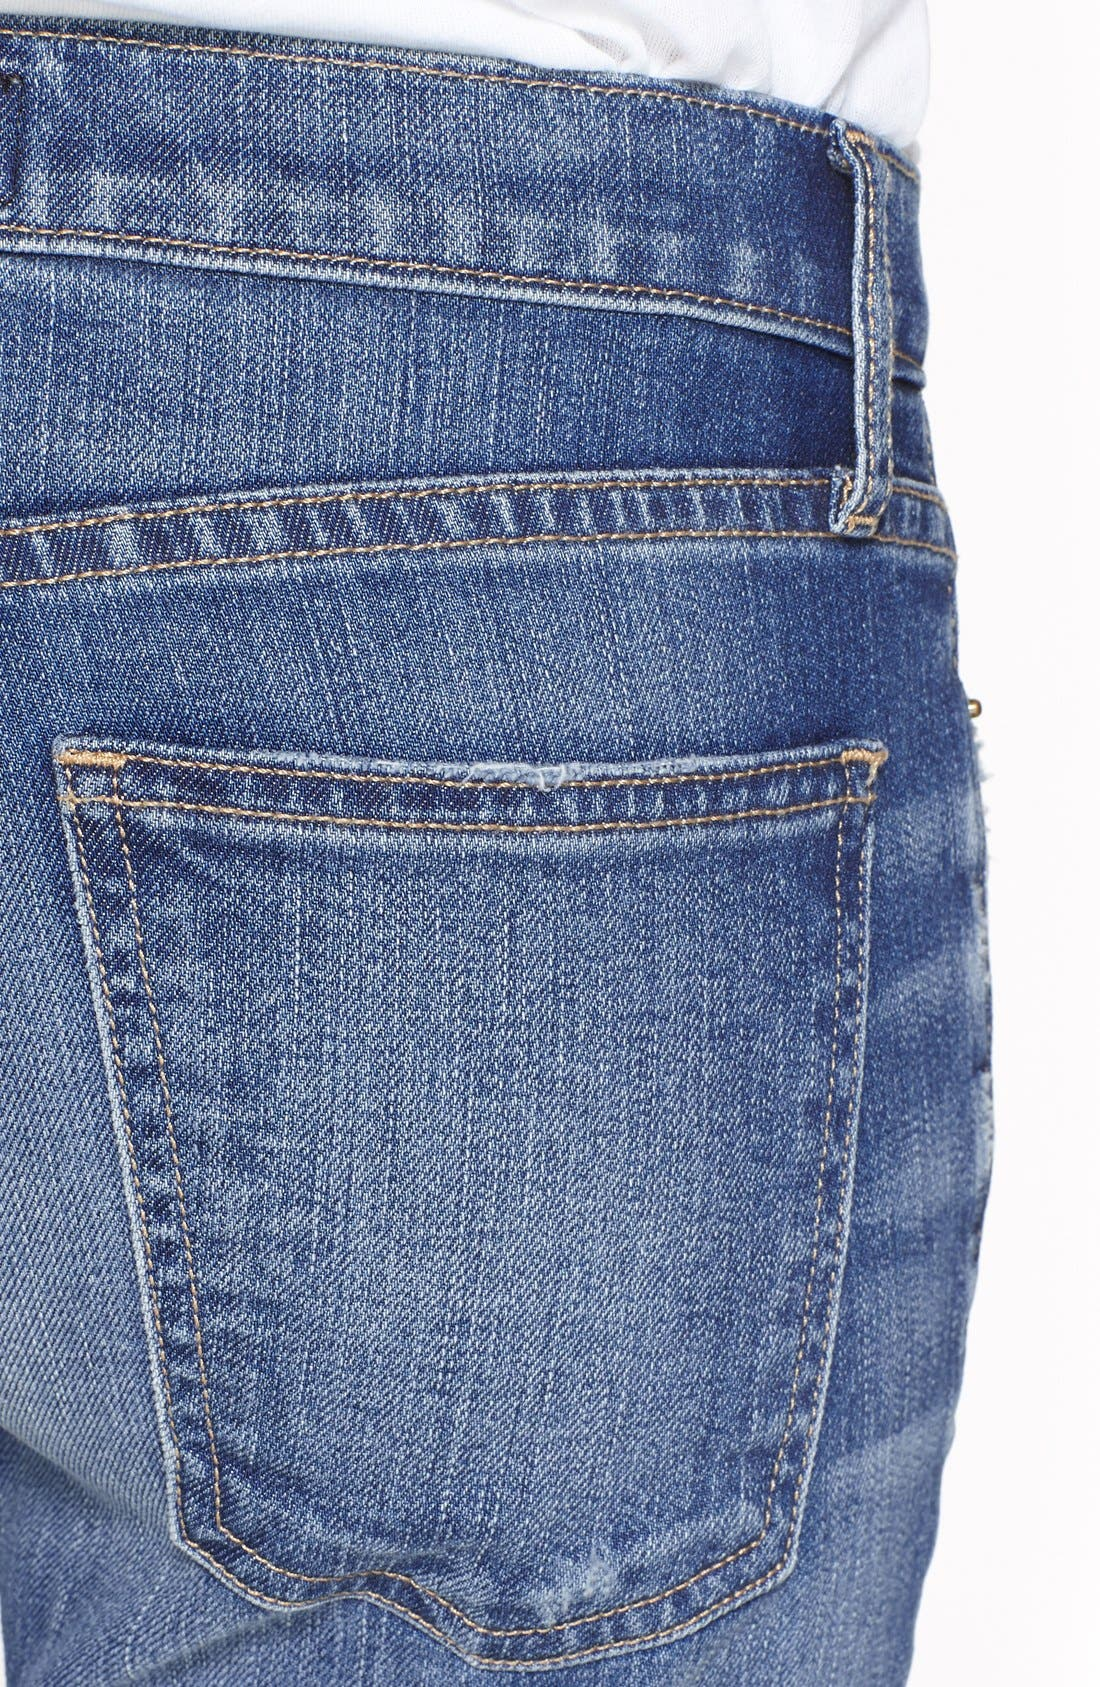 'The Stiletto' Destroyed Skinny Jeans,                             Alternate thumbnail 36, color,